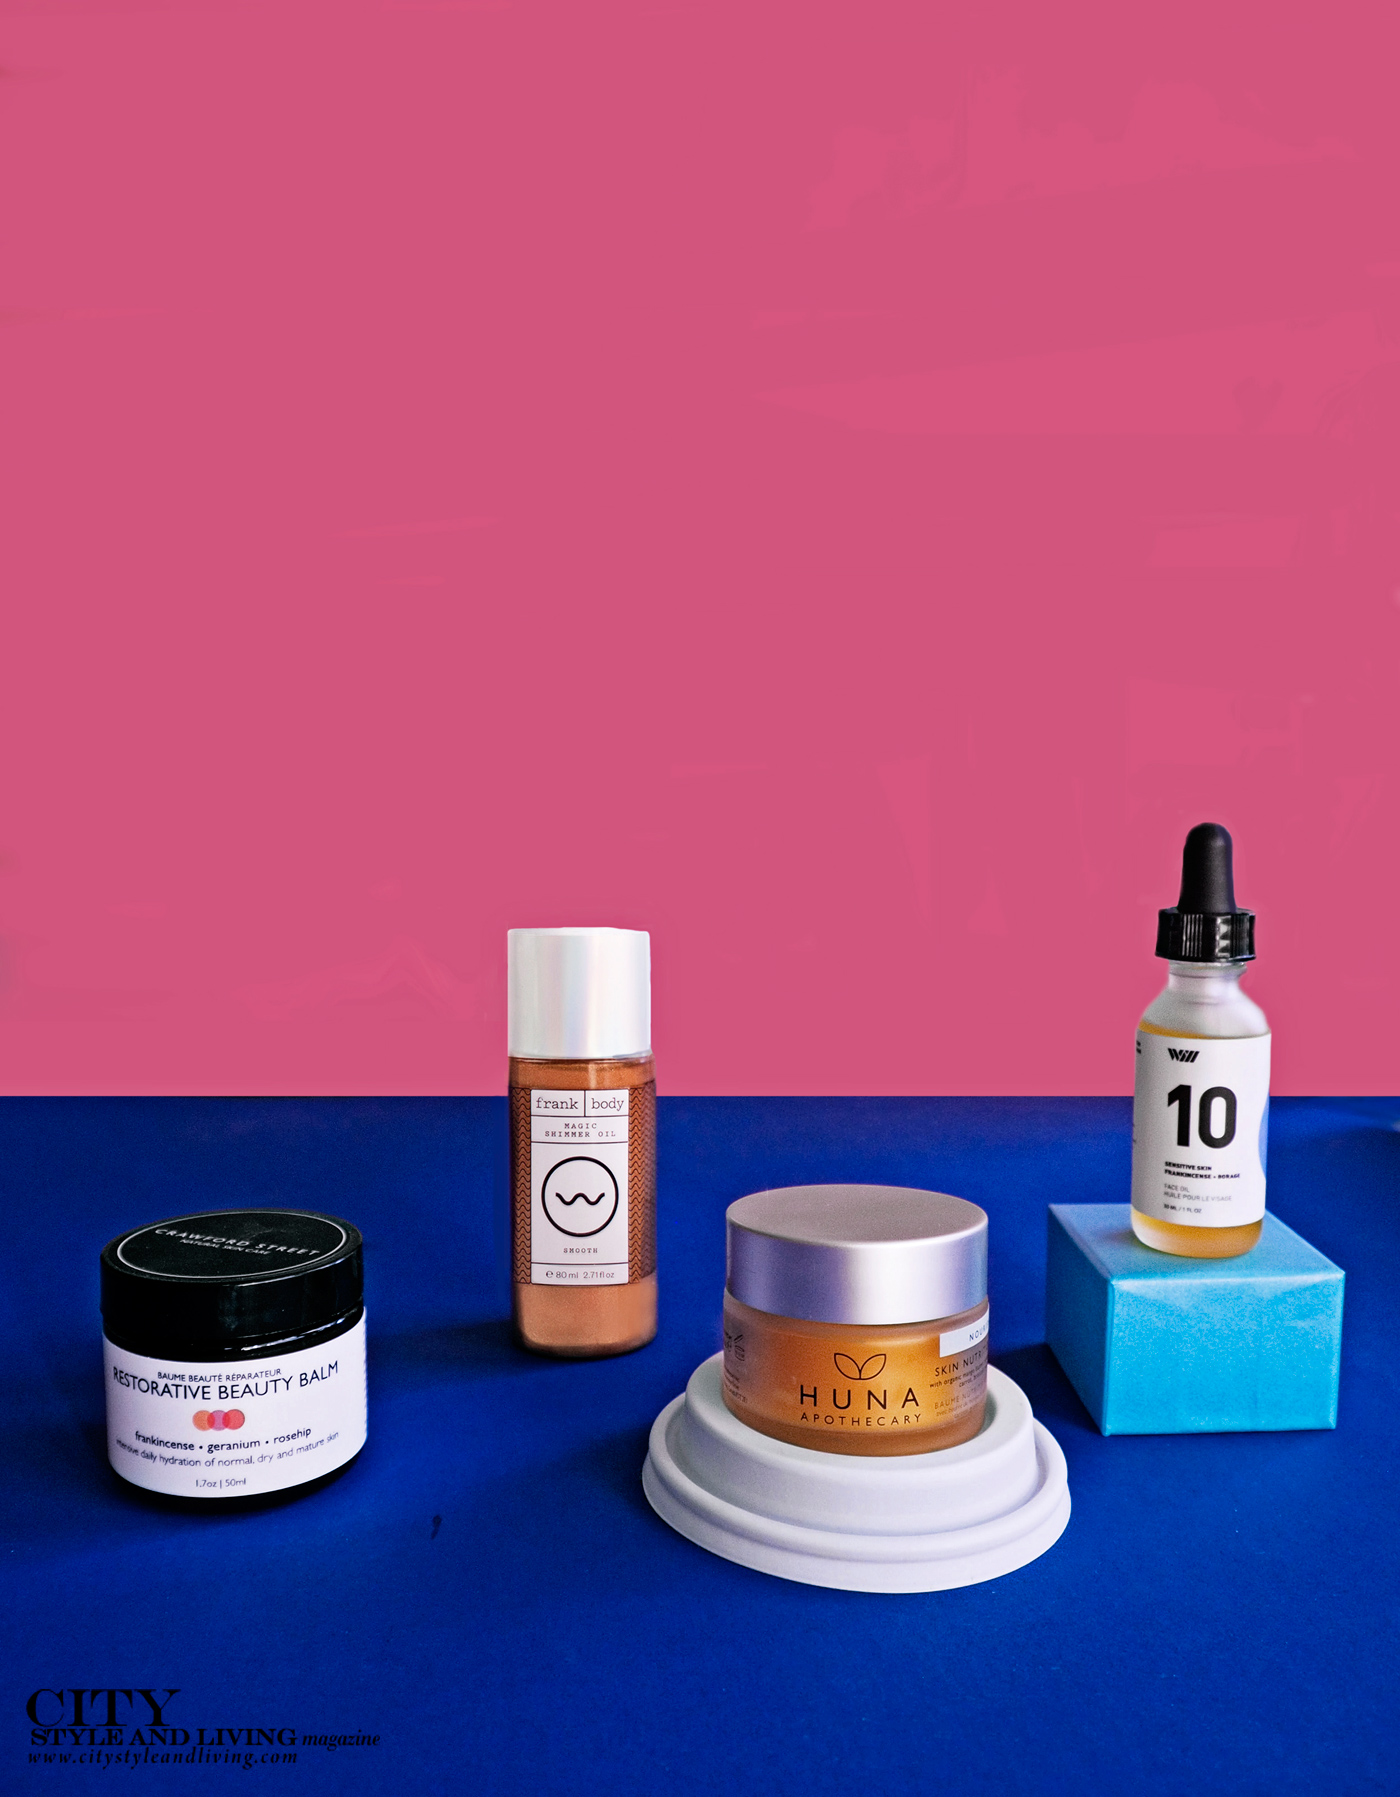 City Style and Living Magazine Summer 2019 Beauty Products balms and oils